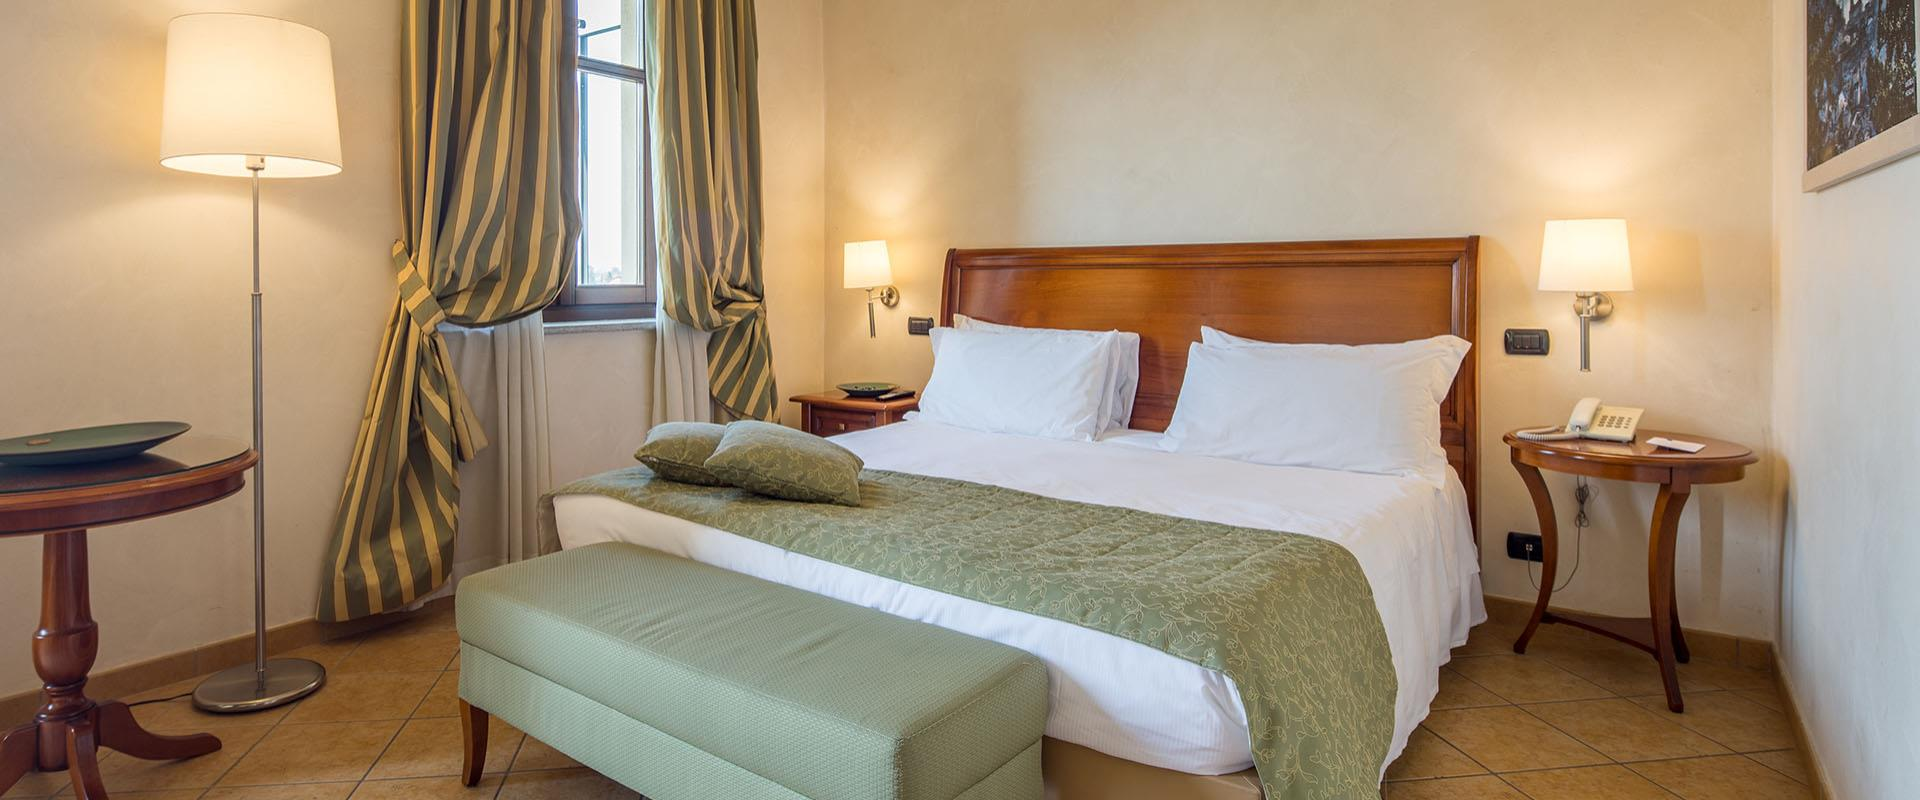 Are you looking for a hotel for your stay near Turin airport? Make a reservation at the Best Western Plus Hotel Le Rondini